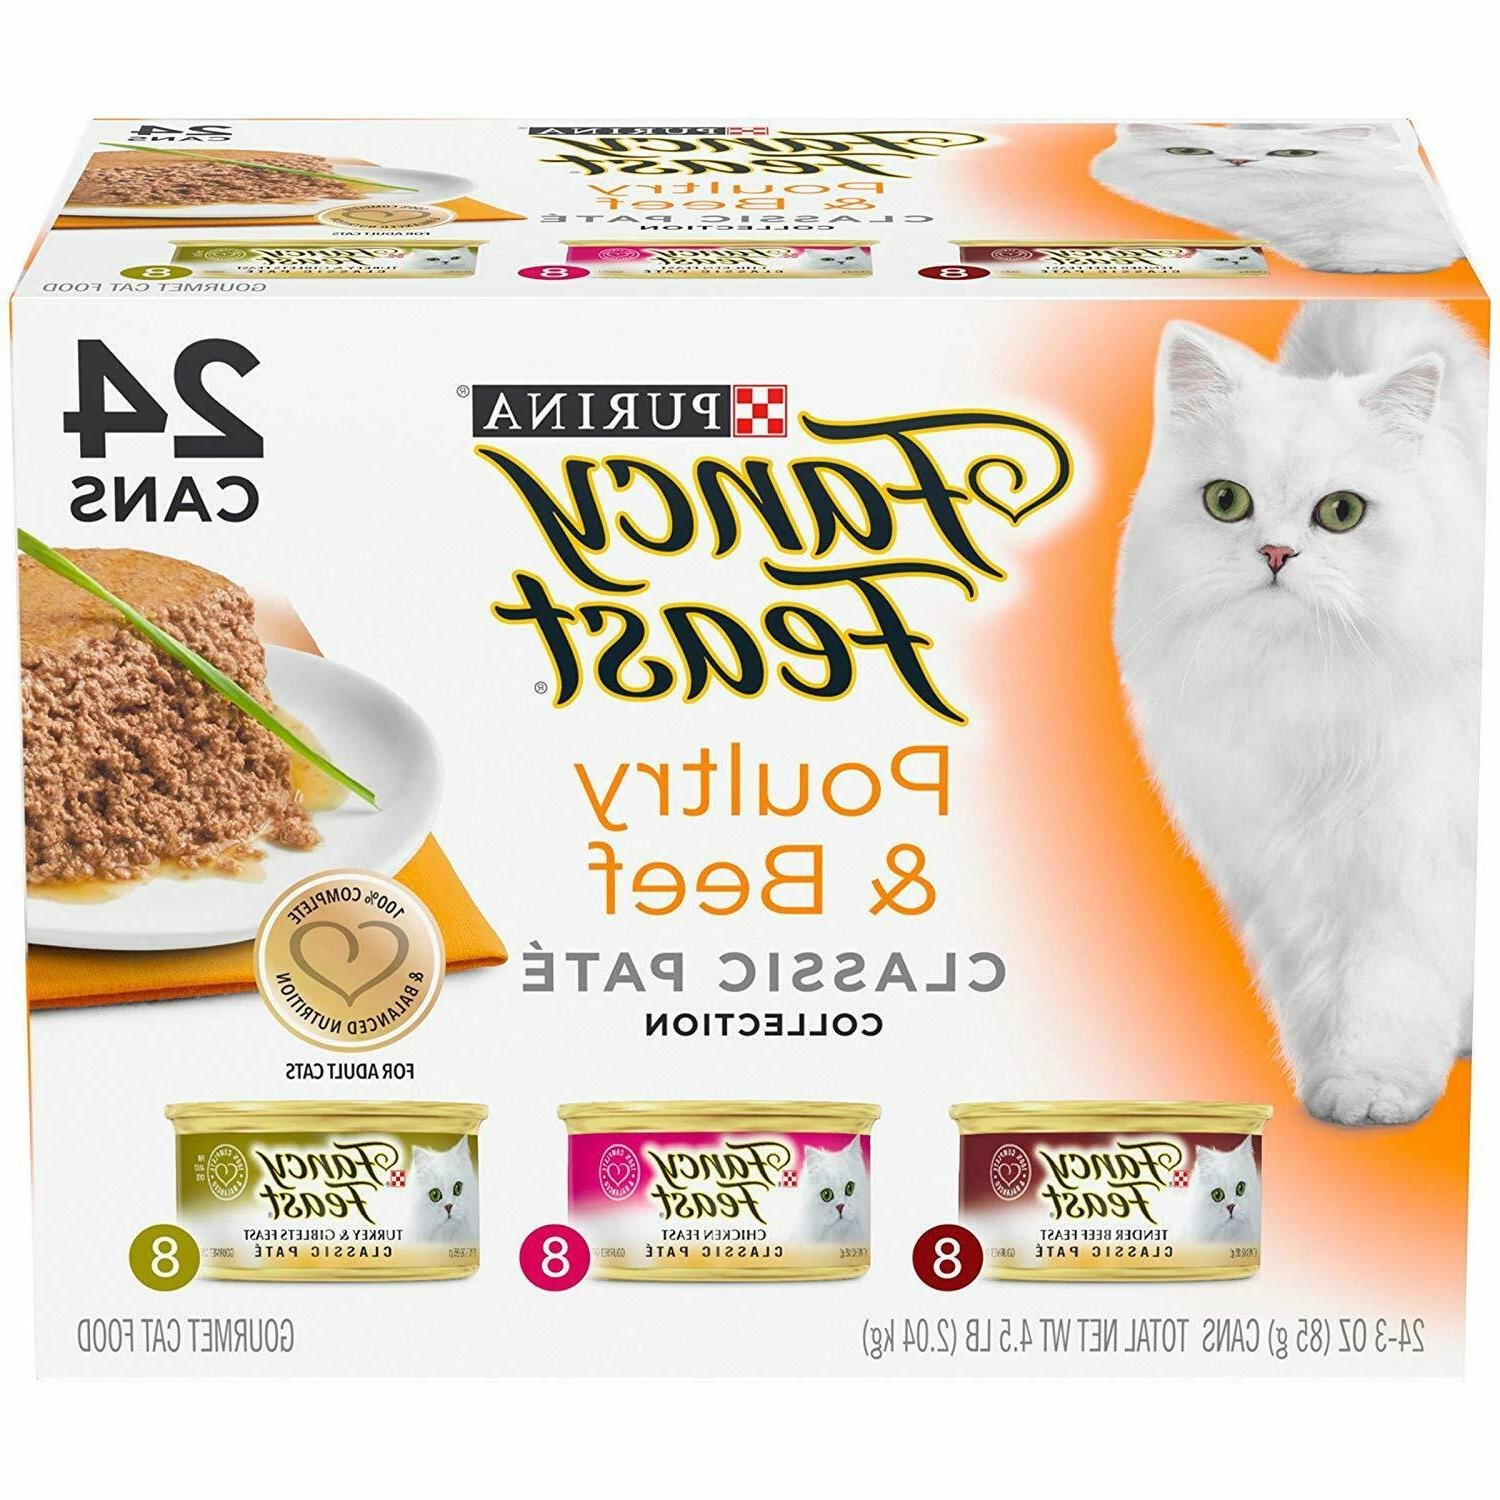 fancy feast poultry and beef wet cat